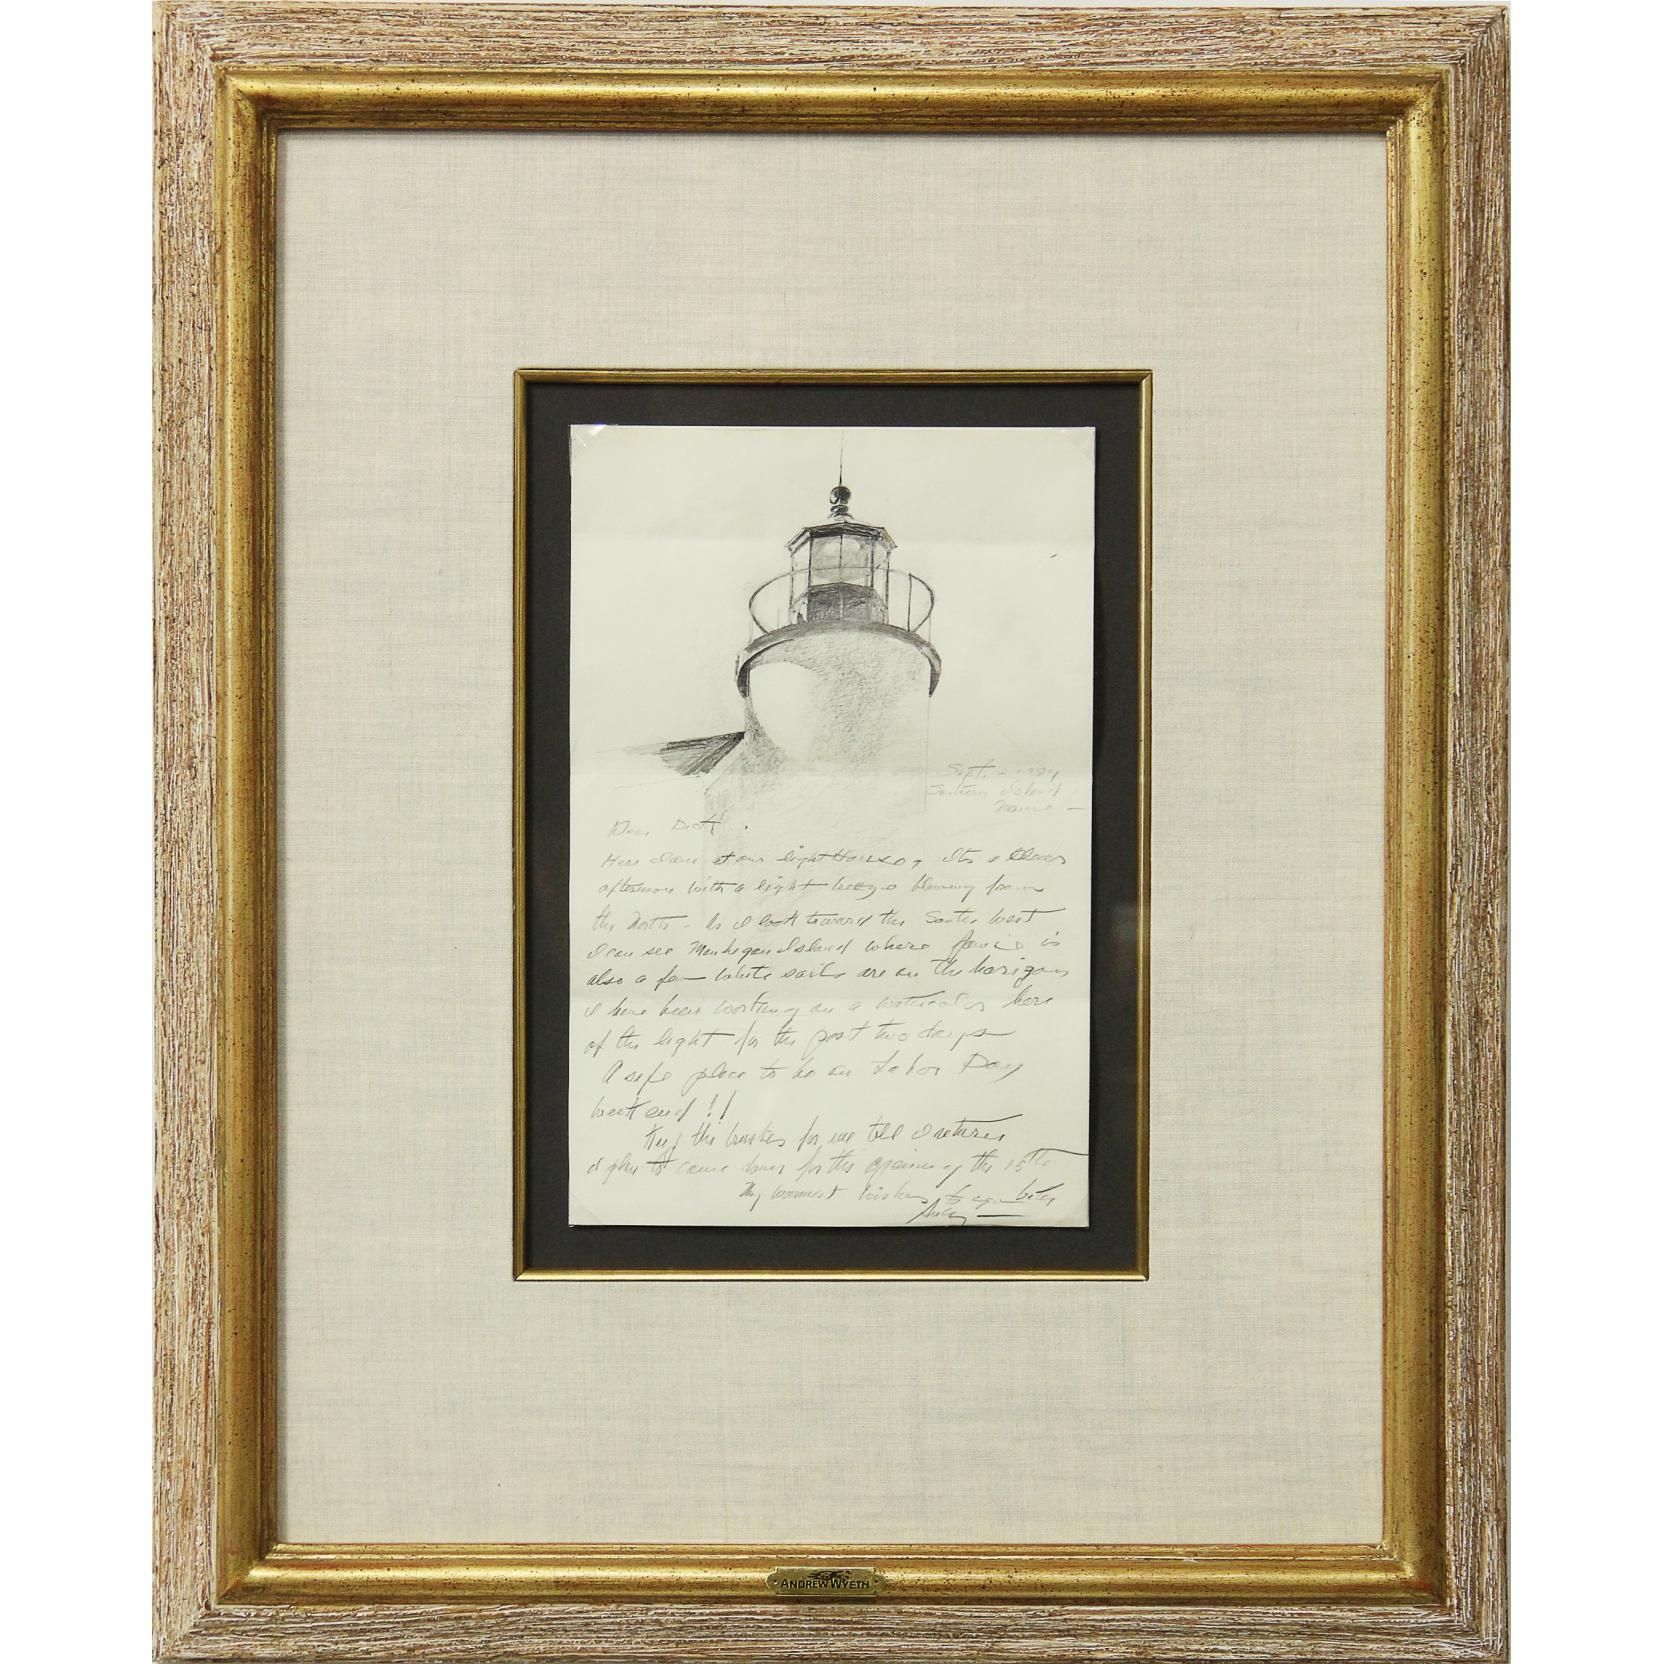 Andrew wyeth 19172009 letter with drawing sold 6000